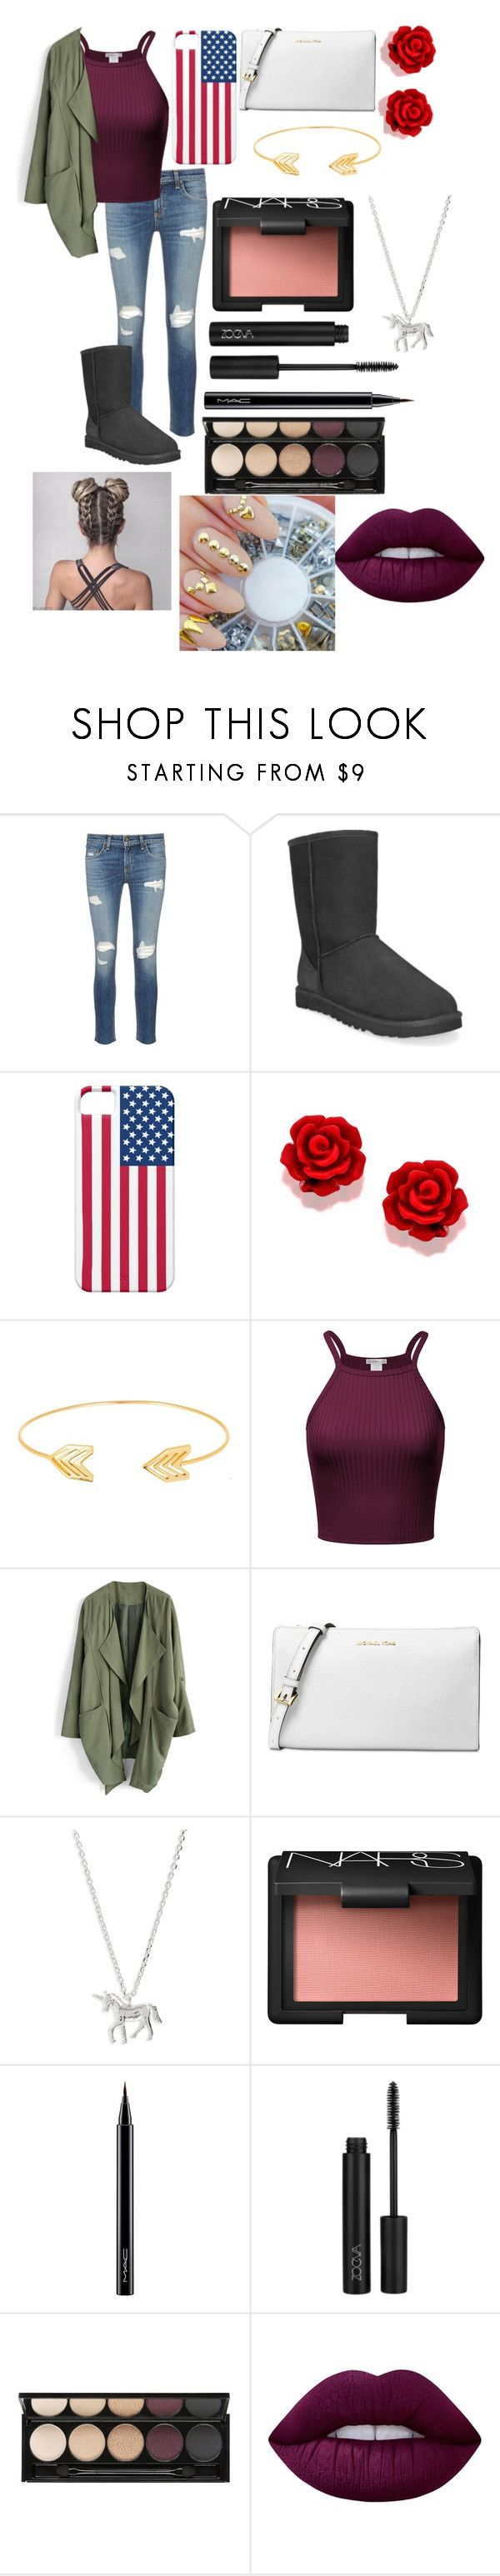 """Untitled #473"" by peanut03411 ❤ liked on Polyvore featuring rag & bone/JEAN, UGG Australia, Lord & Taylor, Chicwish, Michael Kors, Estella Bartlett, NARS Cosmetics, MAC Cosmetics, Witchery and Lime Crime"